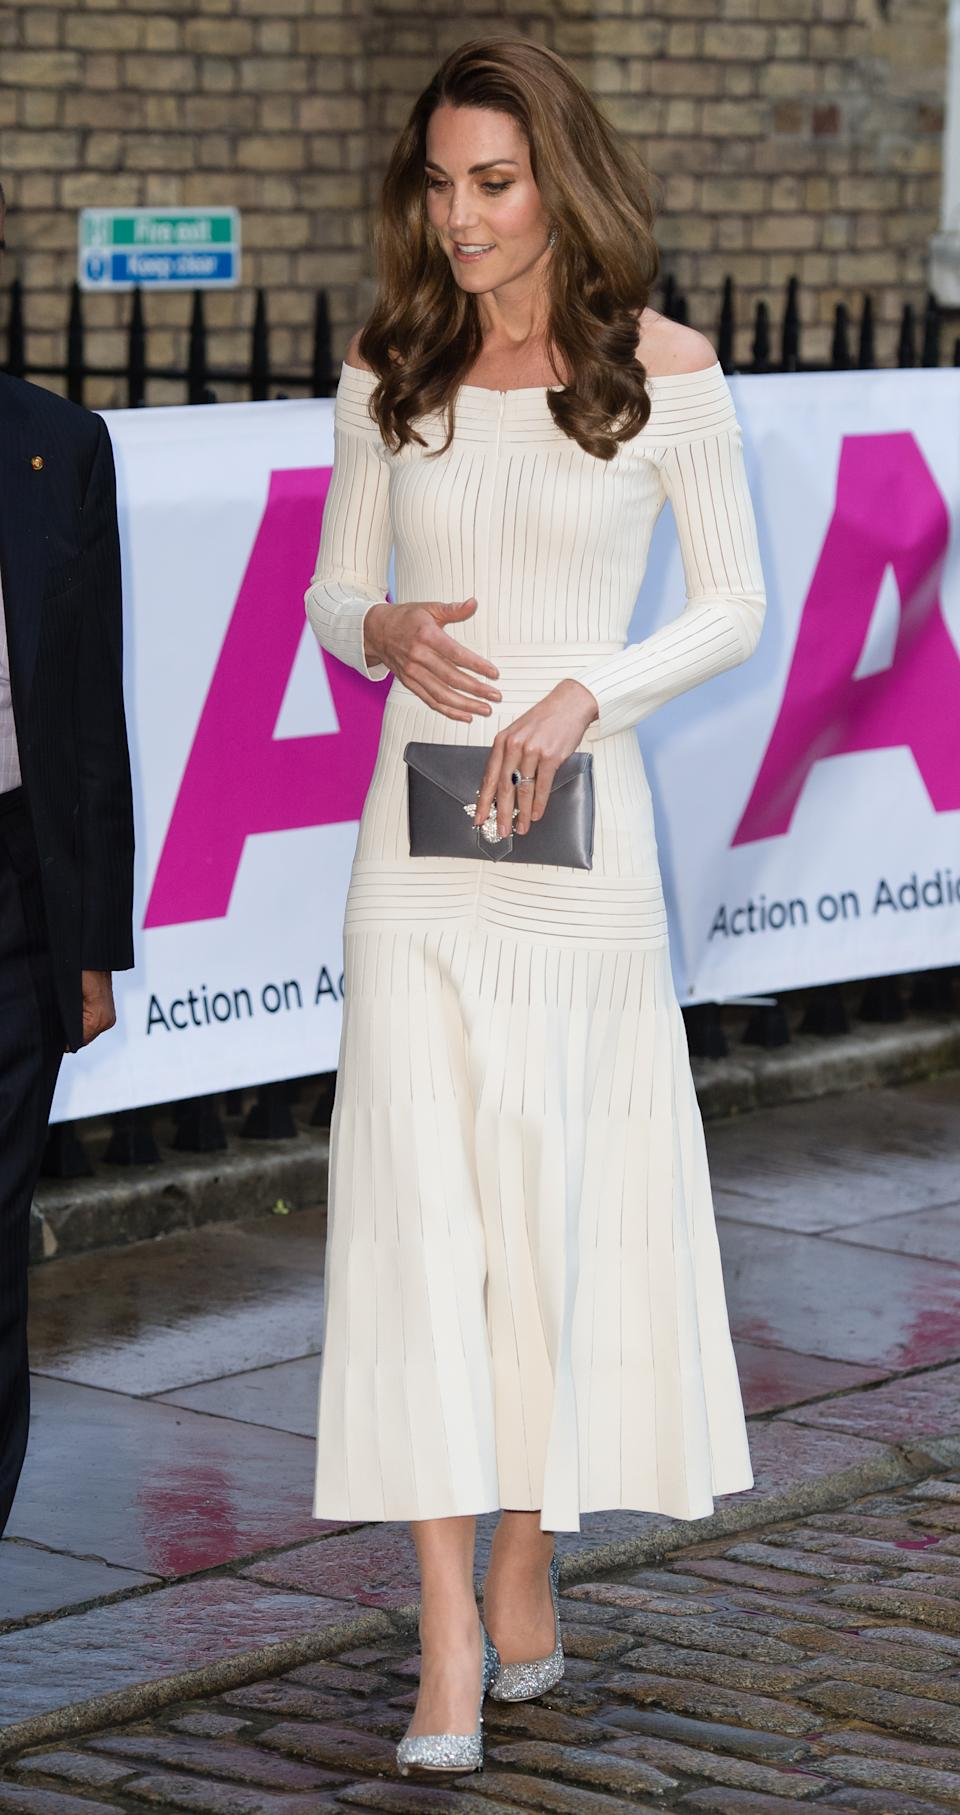 Kate Middleton wore the Jimmy Choo Romy 100 heels at the Action on Addiction earlier this year [Photo: Getty]